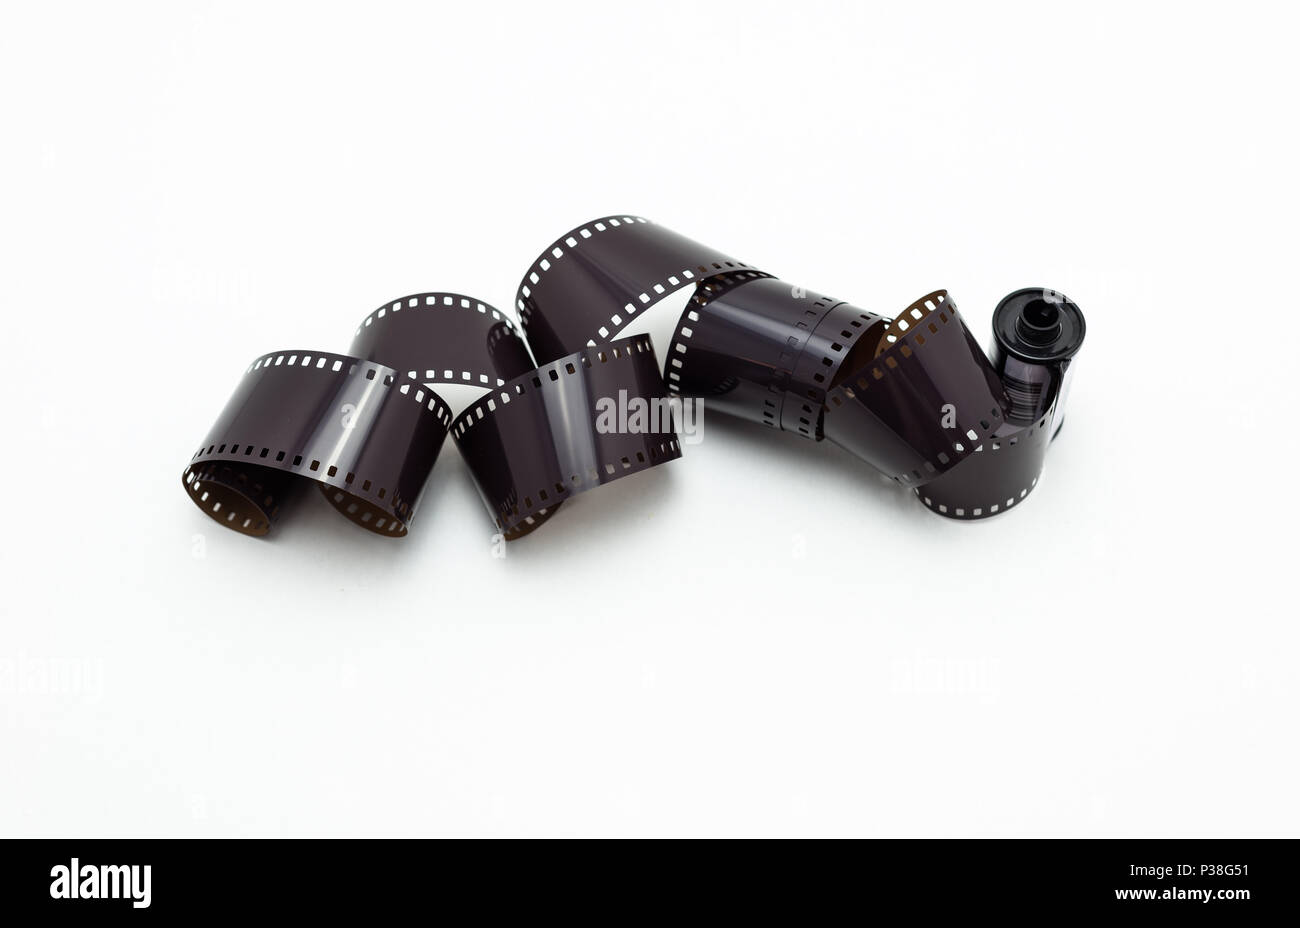 35mm photo film rolls. Isolated on white background. Stock Photo